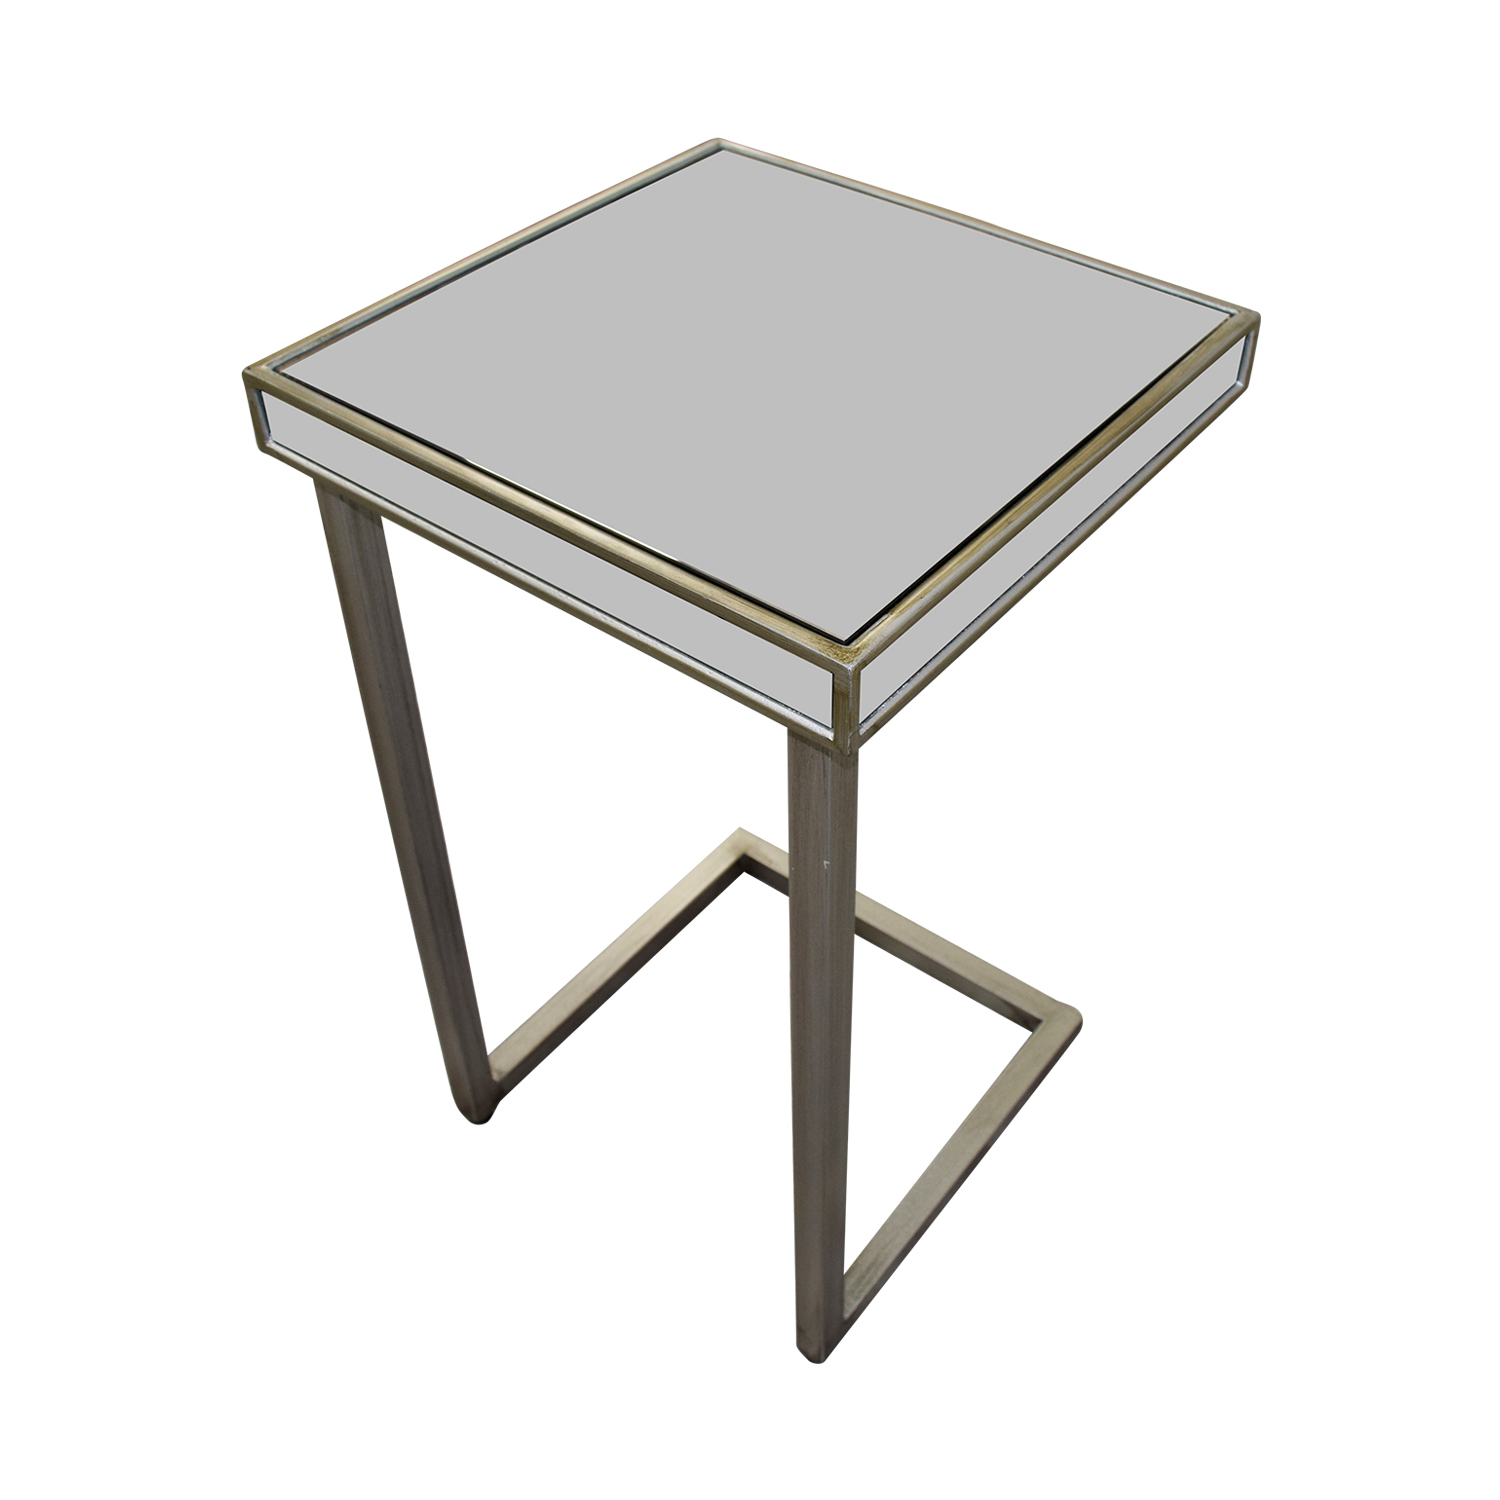 buy Pier 1 Imports Hayworth Silver C-Table in Mirror Pier 1 Imports Tables